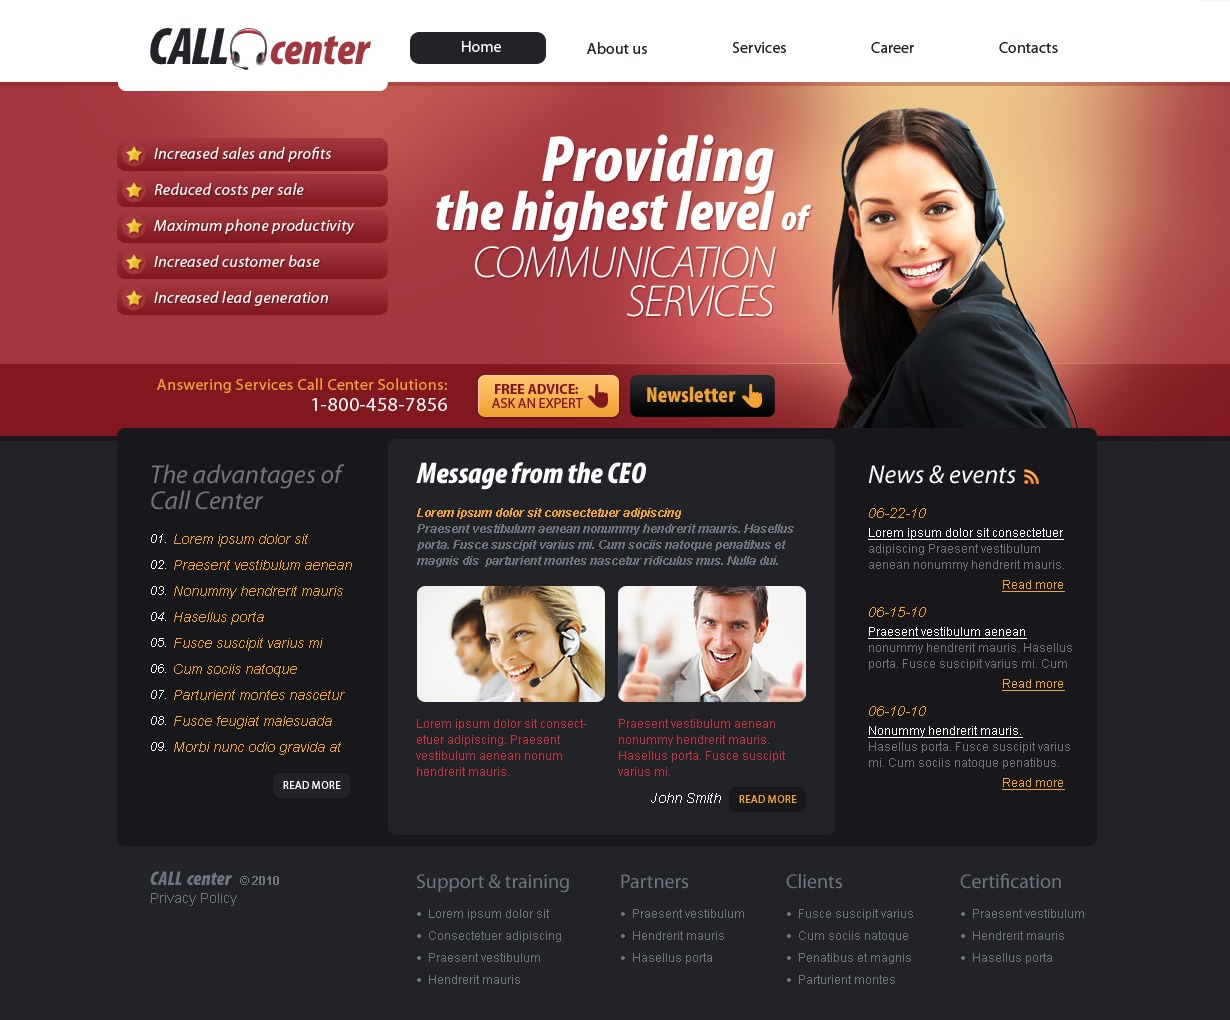 The Call Center PSD Design 54143, one of the best PSD templates of its kind (business, communications, flash 8, wide), also known as call center PSD template, VoIP provider PSD template, services PSD template, software PSD template, customer PSD template, technology PSD template, callback PSD template, standards PSD template, planning PSD template, consulting PSD template, development PSD template, proposition PSD template, GSM gateway PSD template, telephone PSD template, adapter PSD template, phone PSD template, digital dial PSD template, intercom PSD template, phone PSD template, number PSD template, development PSD template, planning PSD template, communication PSD template, professional and related with call center, VoIP provider, services, software, customer, technology, callback, standards, planning, consulting, development, proposition, GSM gateway, telephone, adapter, phone, digital dial, intercom, phone, number, development, planning, communication, professional, etc.